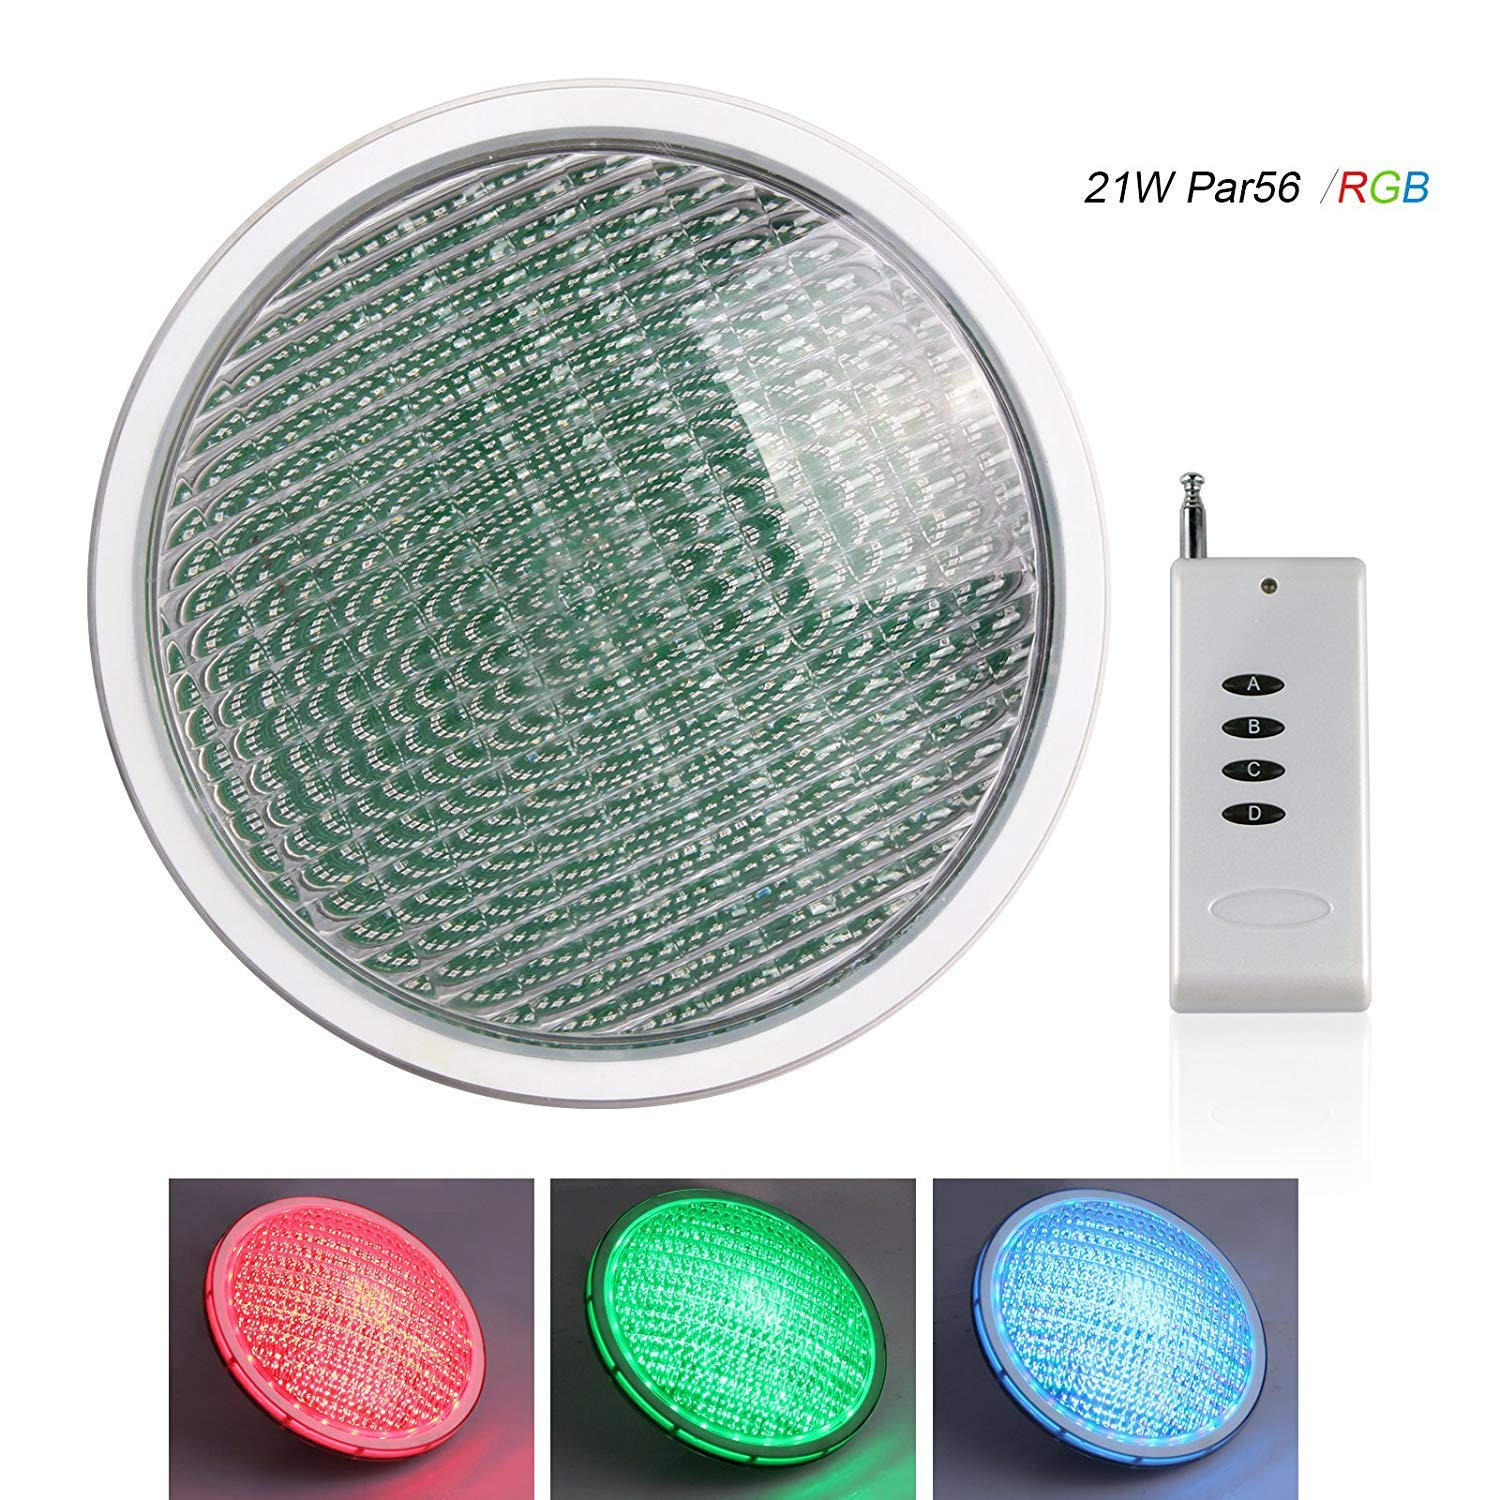 TOPLANET RGB LED Pool Lights Underwater Par 56 LED Swimming Pool Lights 21W Waterproof IP68 12v Colors Changing with Remote Control for Indoor Outdoor Simming Pool Pond or Aquarium by TOPLANET